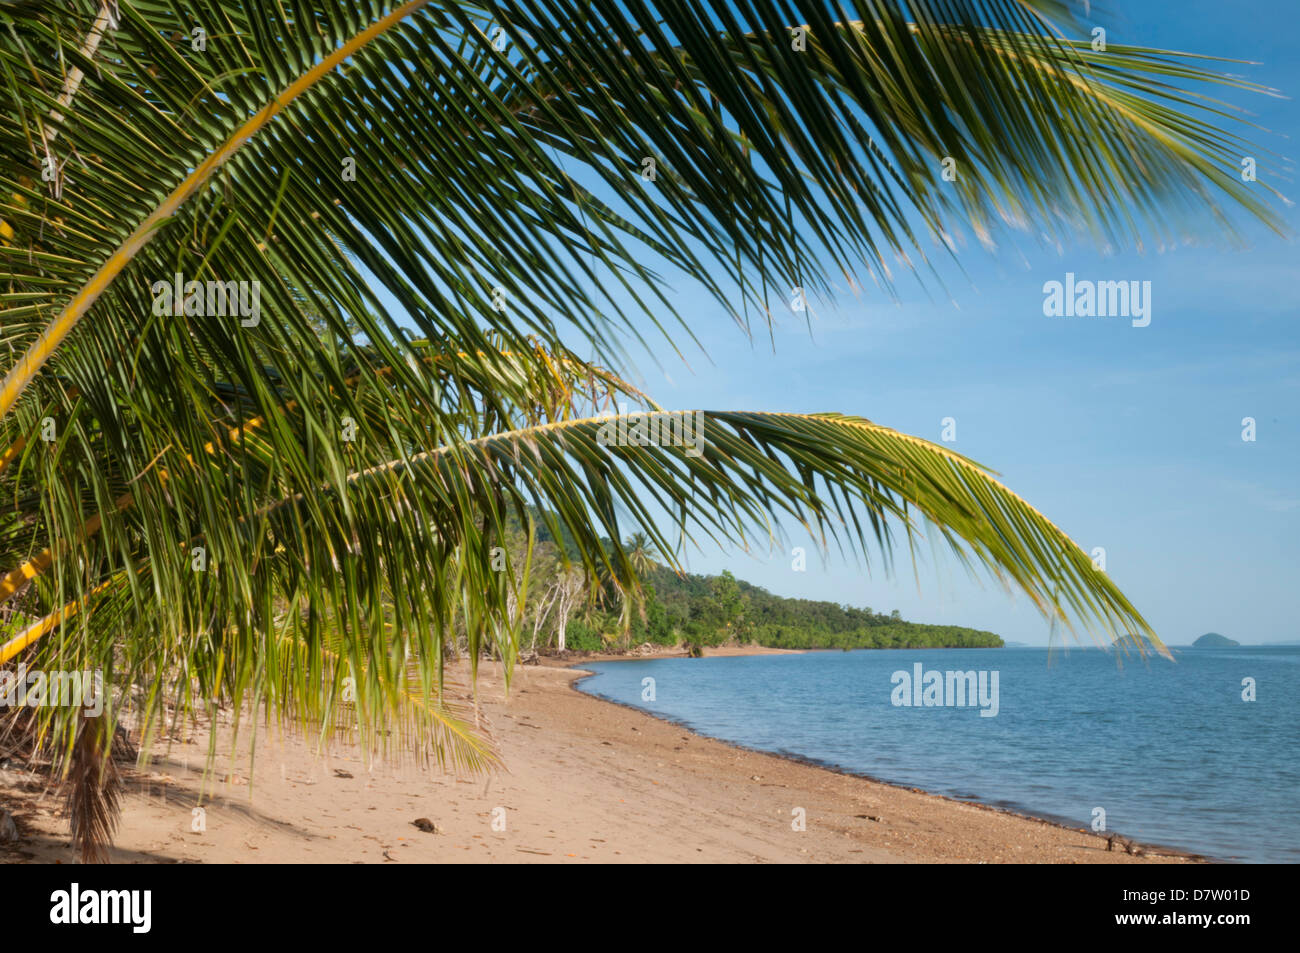 Dunk Island beach with islands offshore, palm leaves, Great Barrier Reef, UNESCO World Heritage  Site, Queensland, - Stock Image